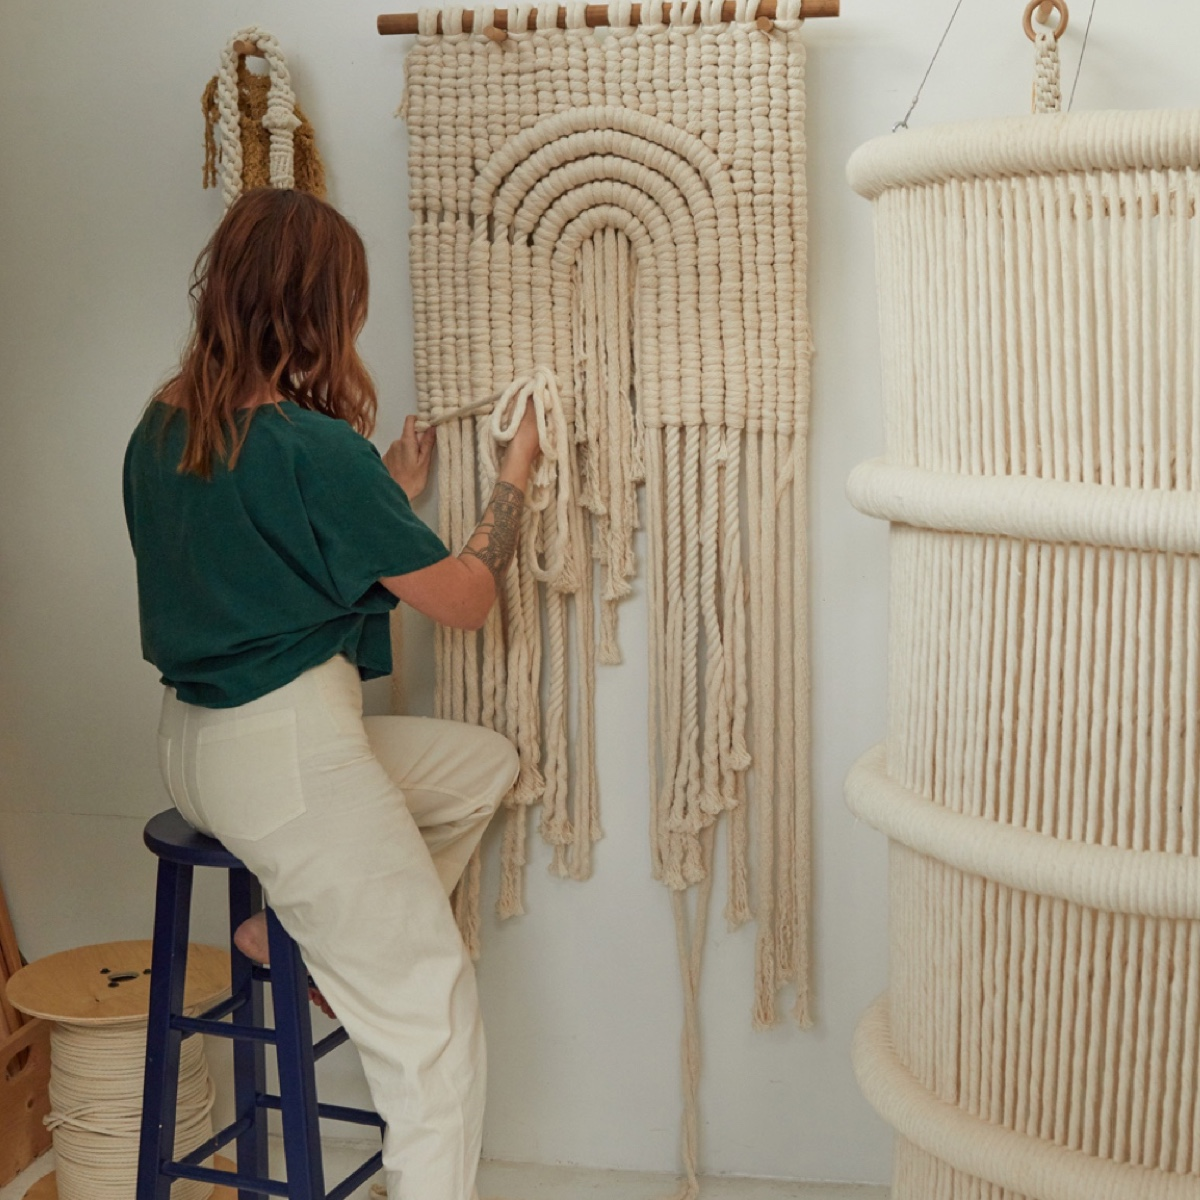 Sally has a home workshop where she creates her large-scale fiber pieces.